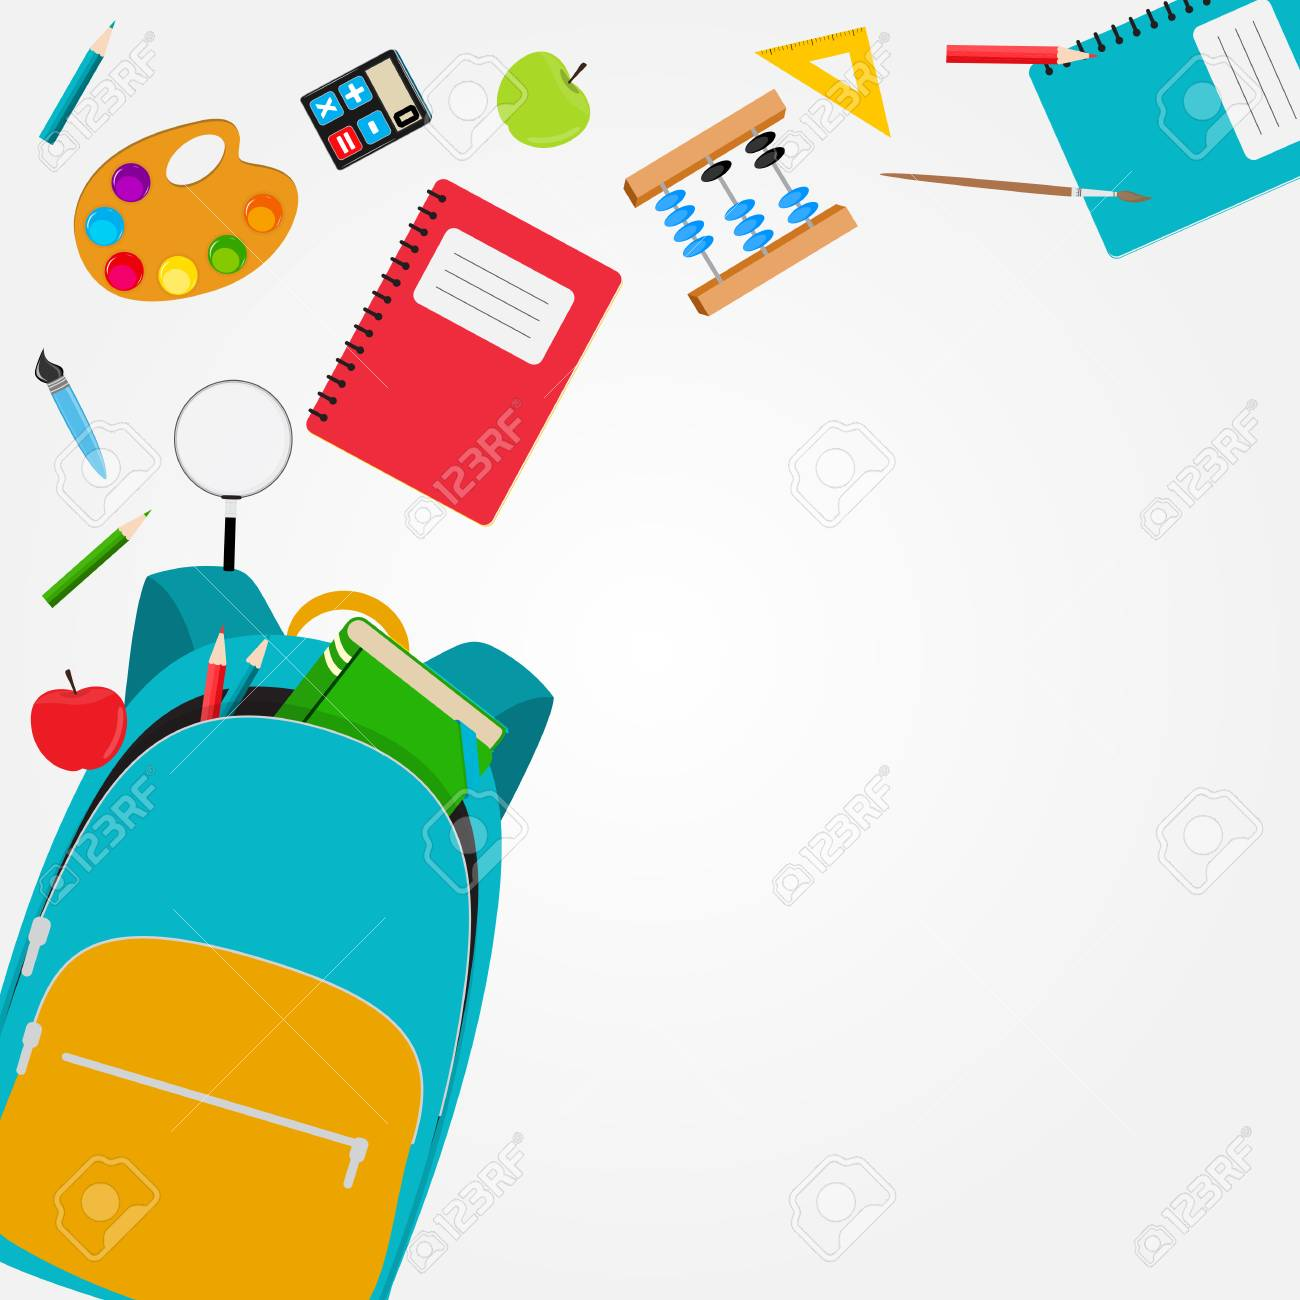 Bag, backpack icon with school accessories. Vector Illustration - 102360904